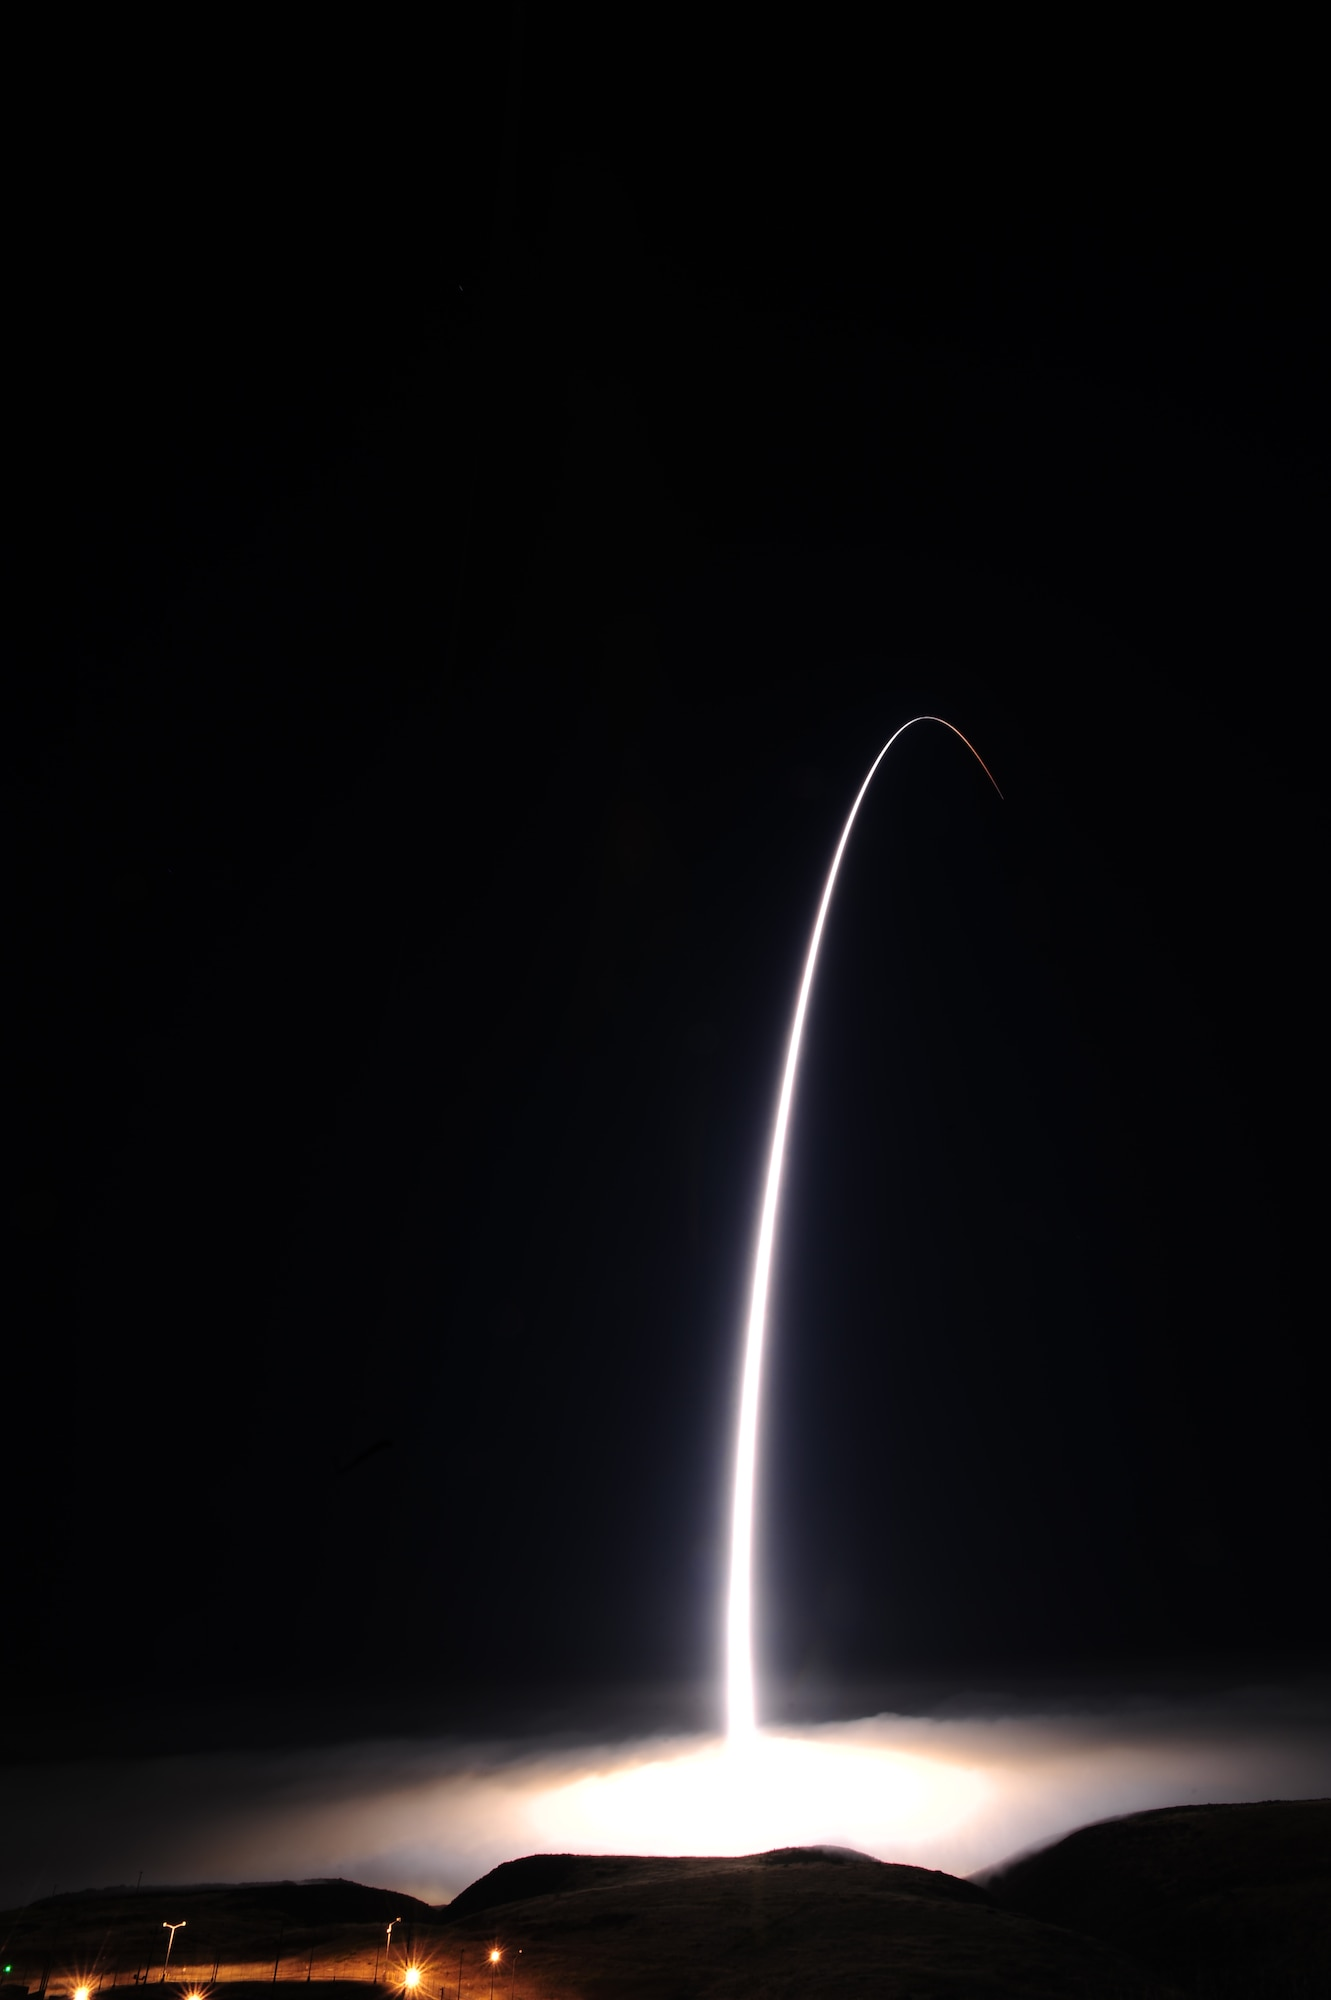 An unarmed Minuteman III intercontinental ballistic missile (ICBM) accelerates toward a test range near Guam, March 27, 2015, after launching from Vandenberg Air Force Base, Calif. The ICBM was the second fired for testing and evaluation purposes in the course of a week, with both Malmstrom and F. E. Warren AFBs sending crews and randomly selected missiles to Vandenberg AFB. (U.S. Air Force photo/Joe Davila)